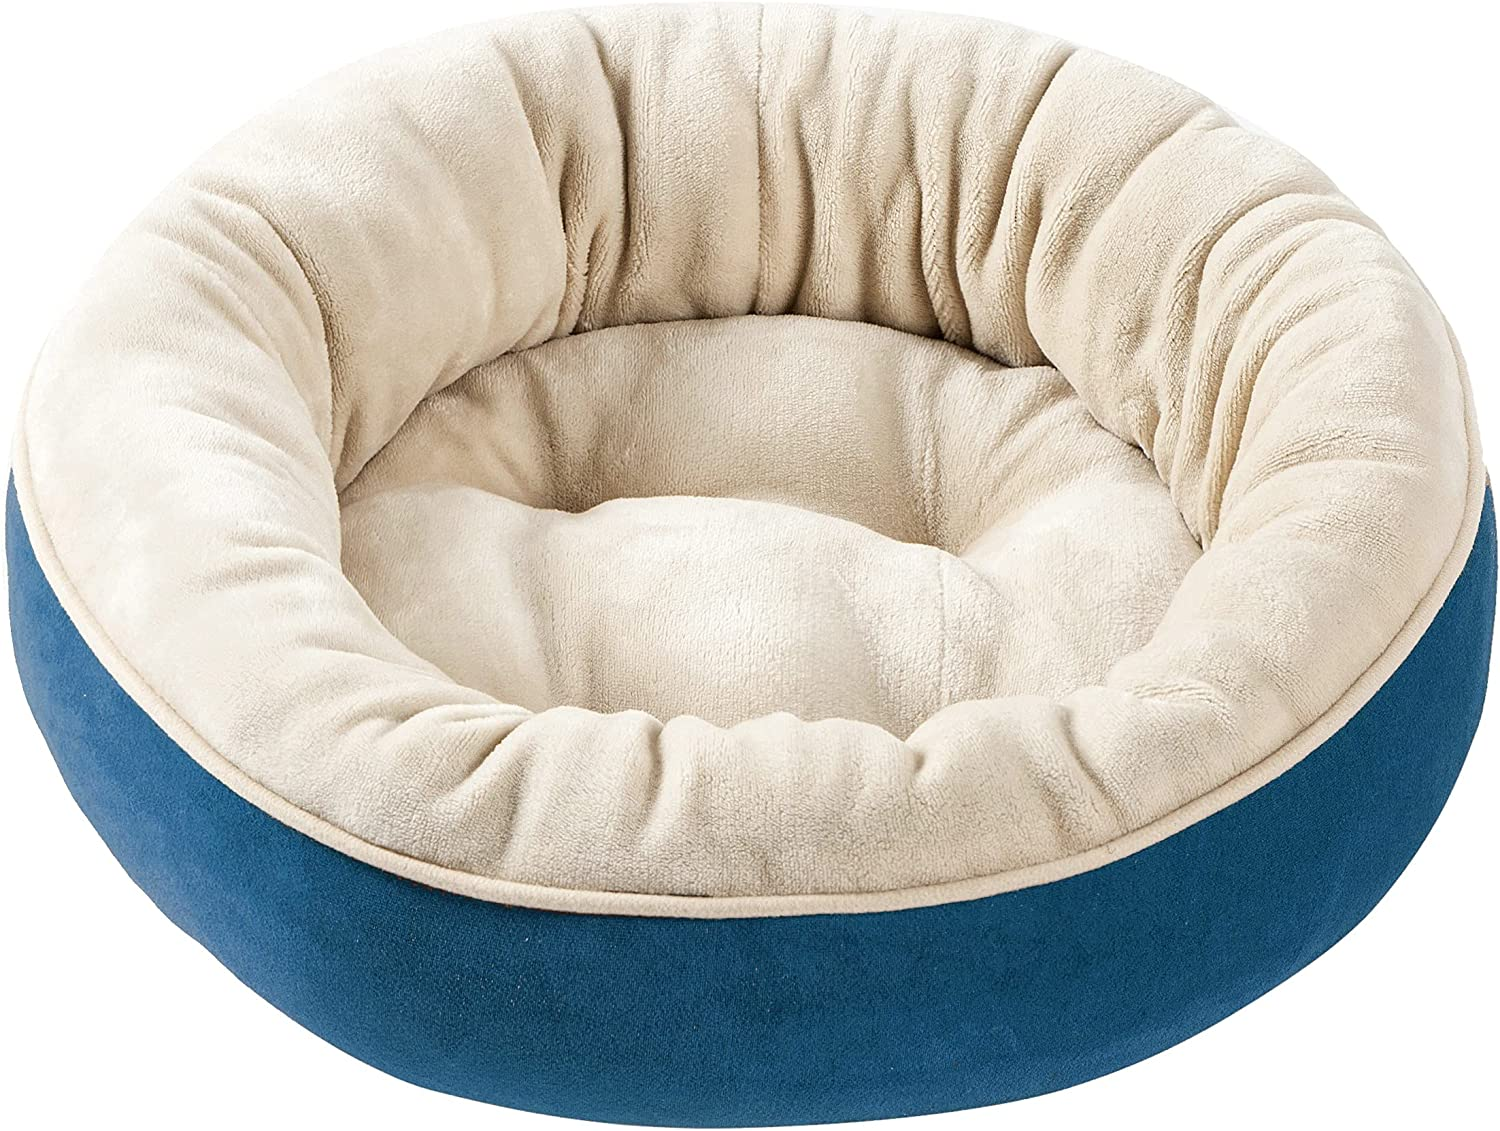 Perodo Round Bolster Dog or Mesa Mall overseas Cat Pet Donut Bed Supplies M